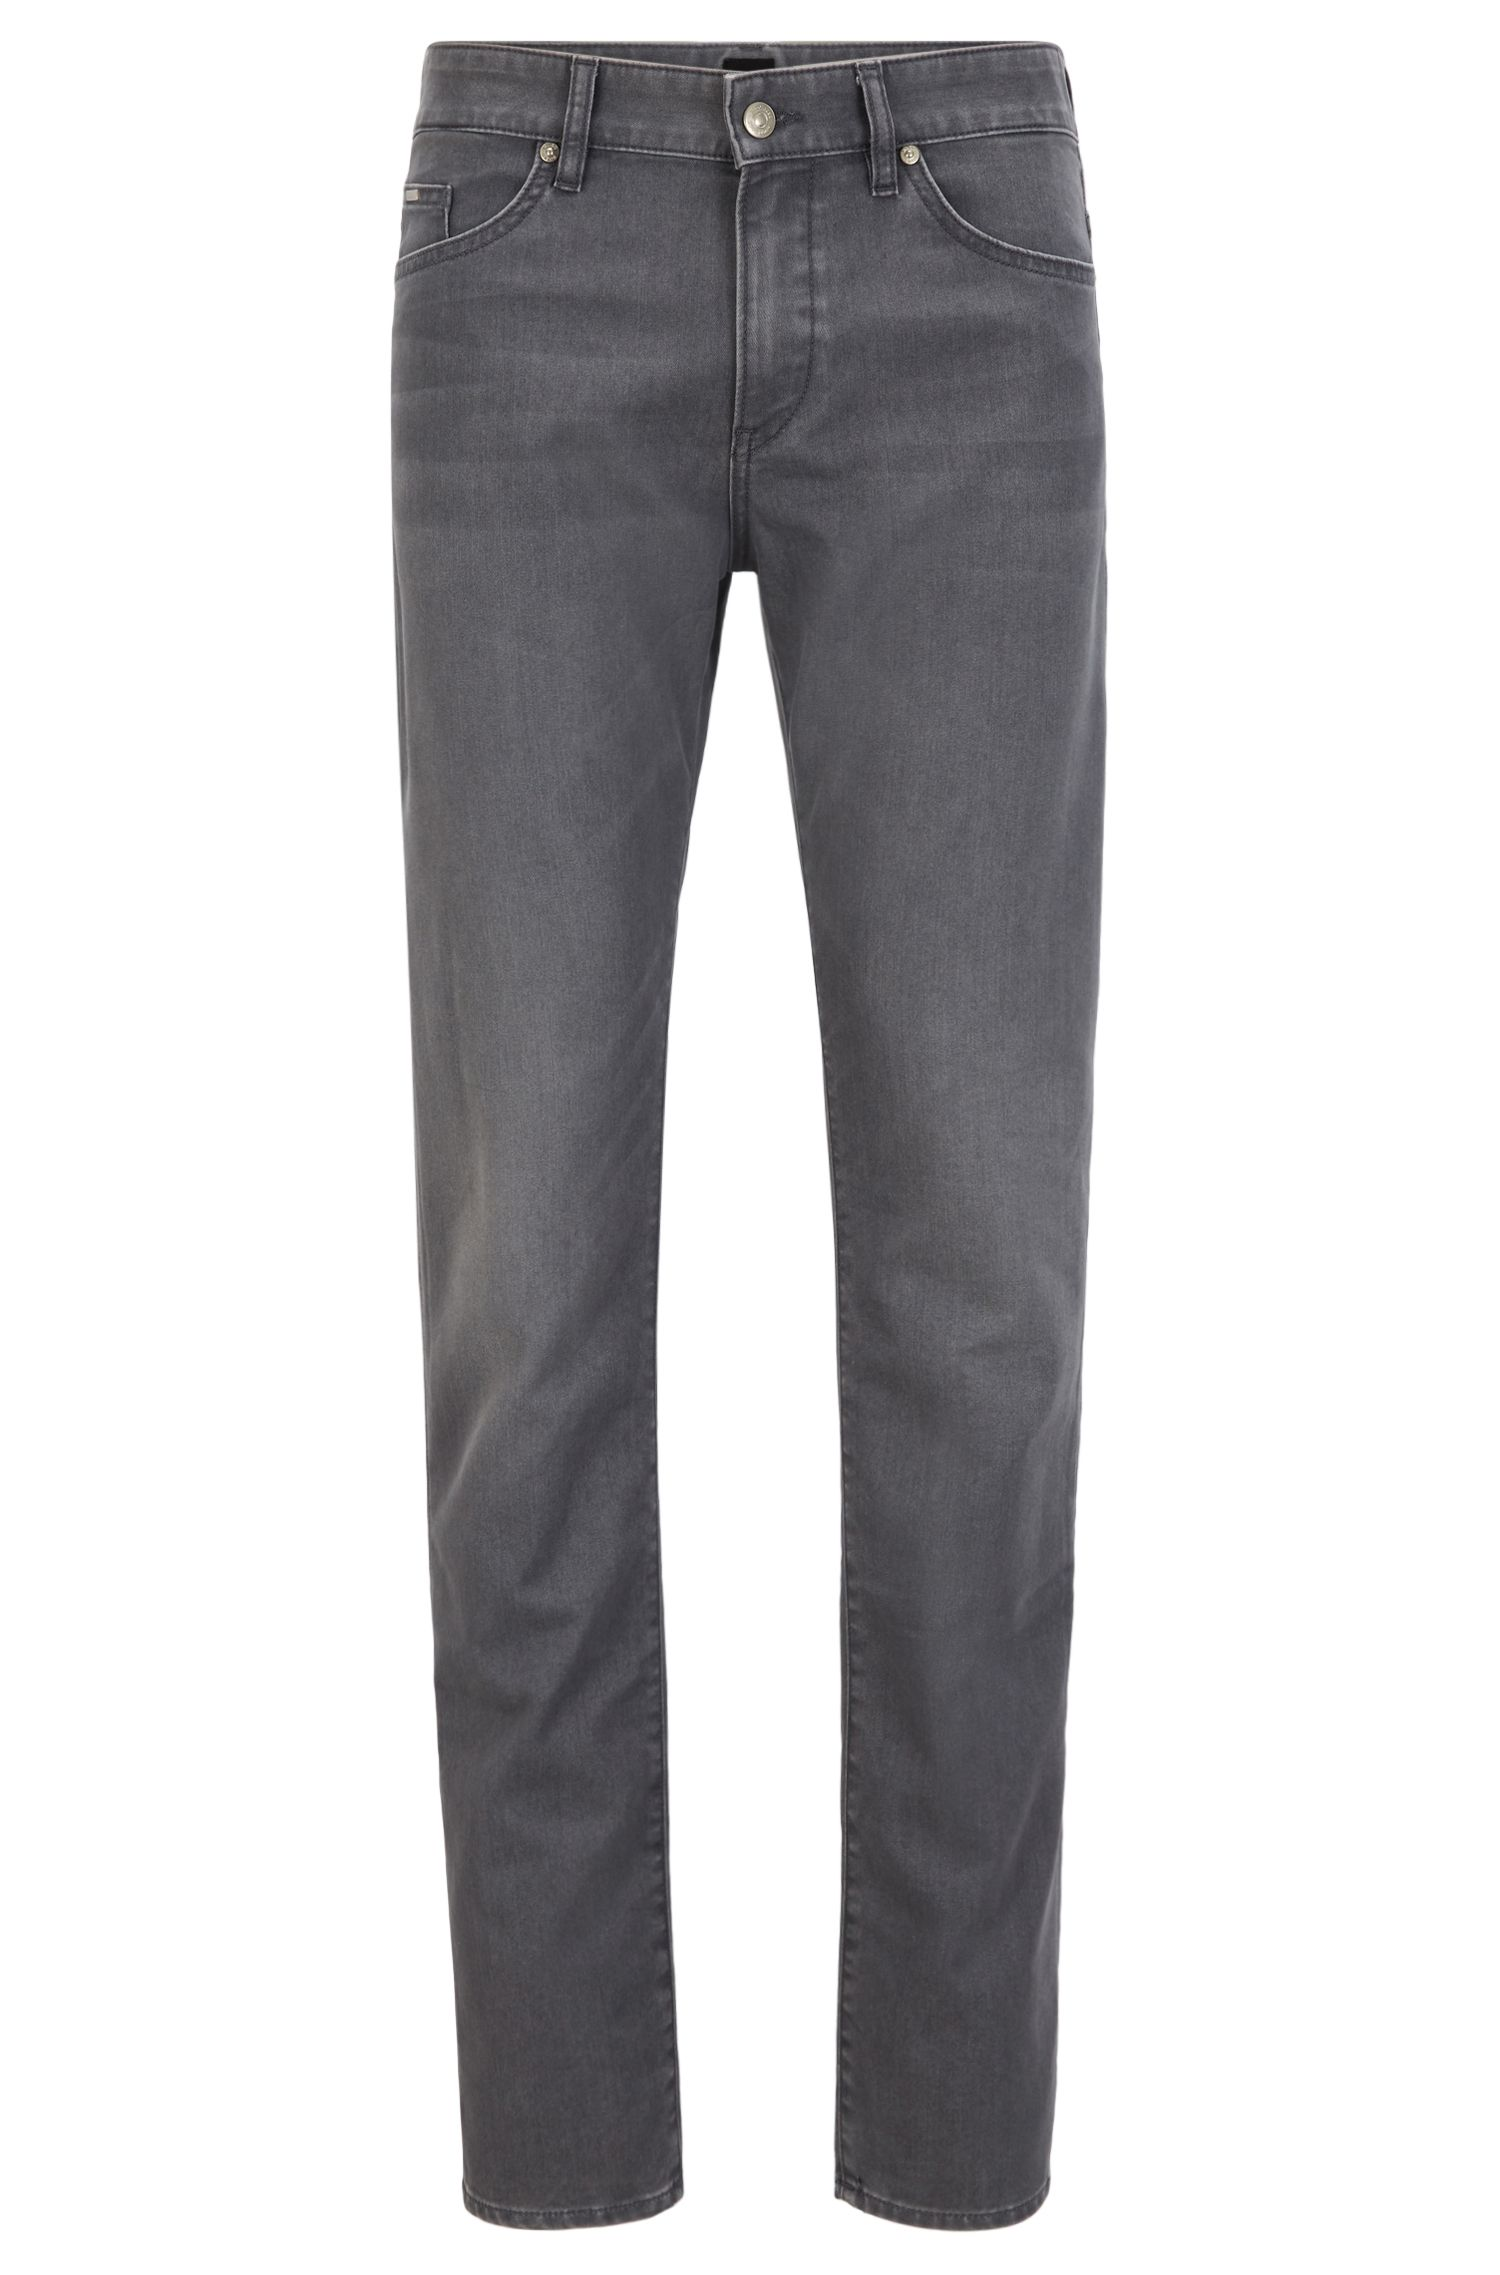 Slim-fit jeans in grey comfort-stretch denim